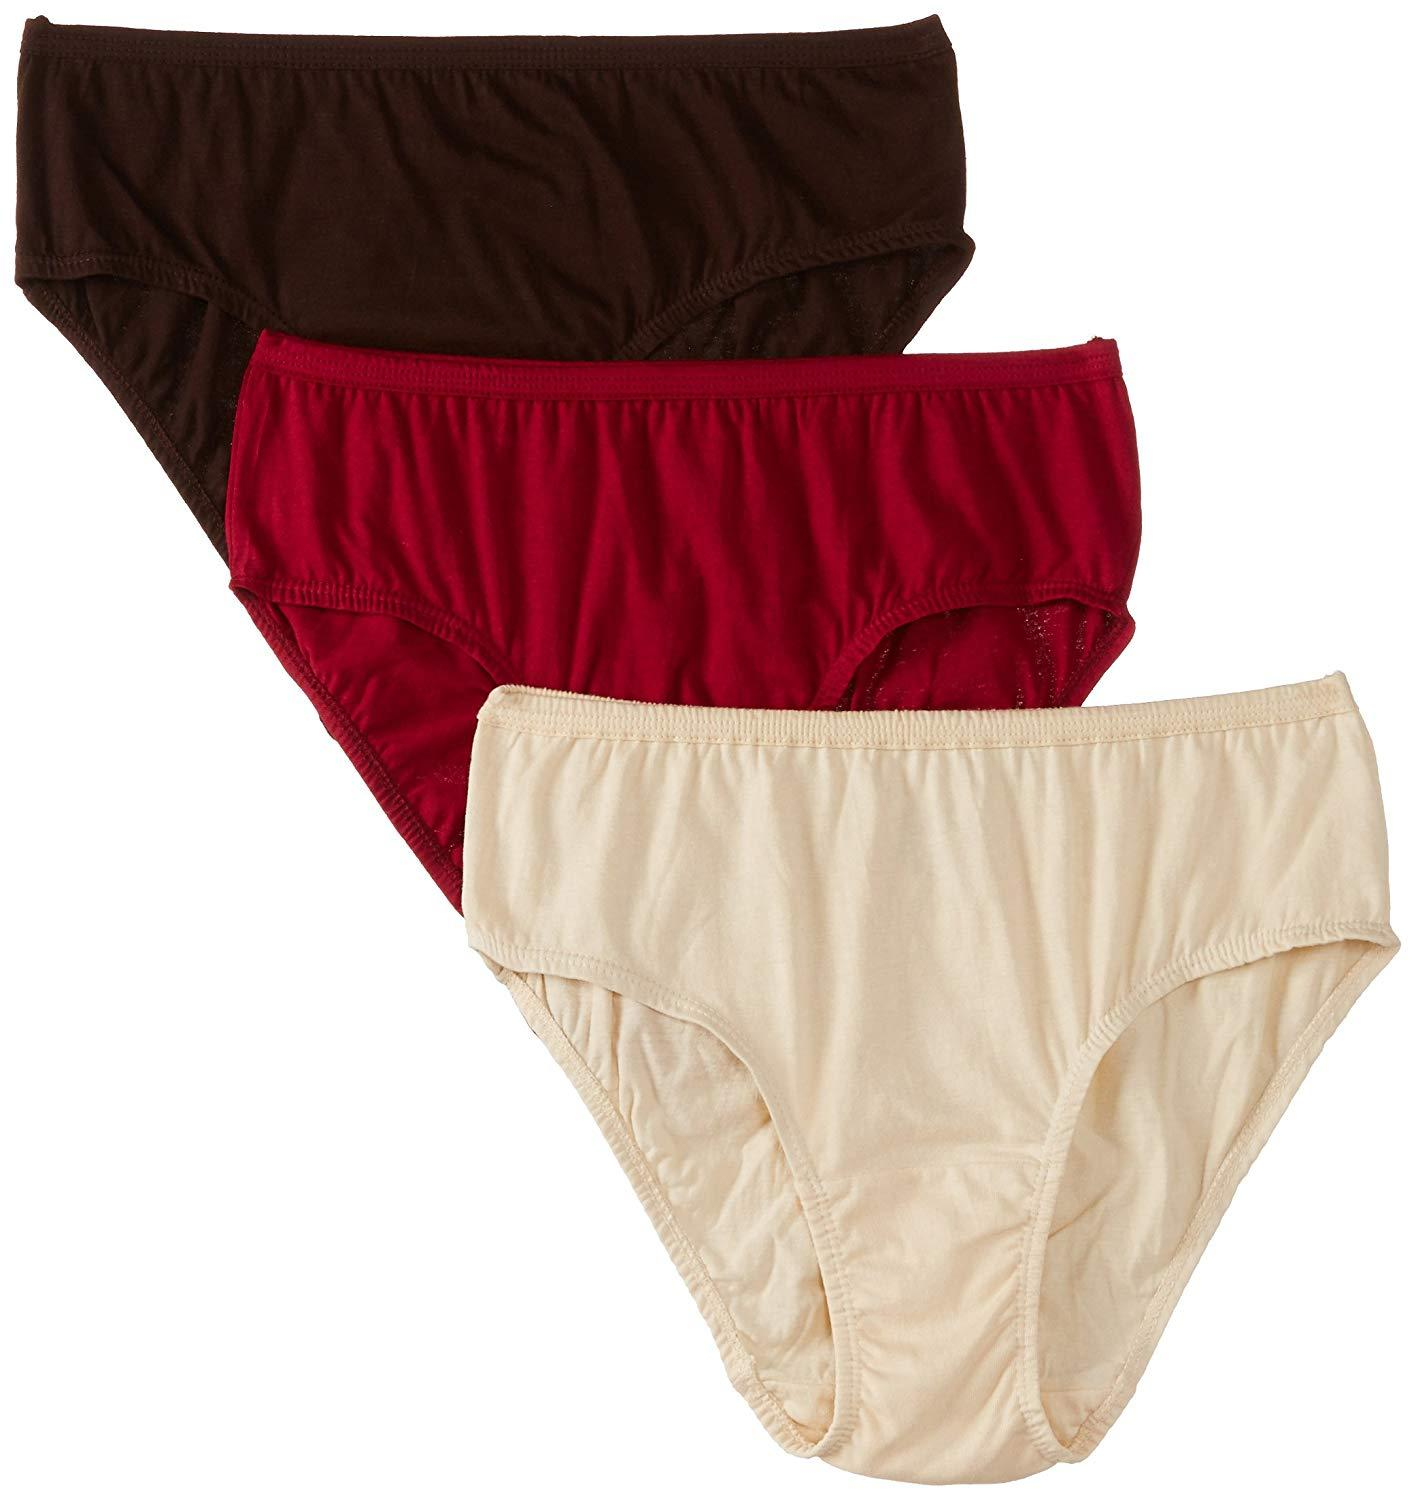 b771983c98 Pack of 3 Cotton Underwear For Women - Multicolor